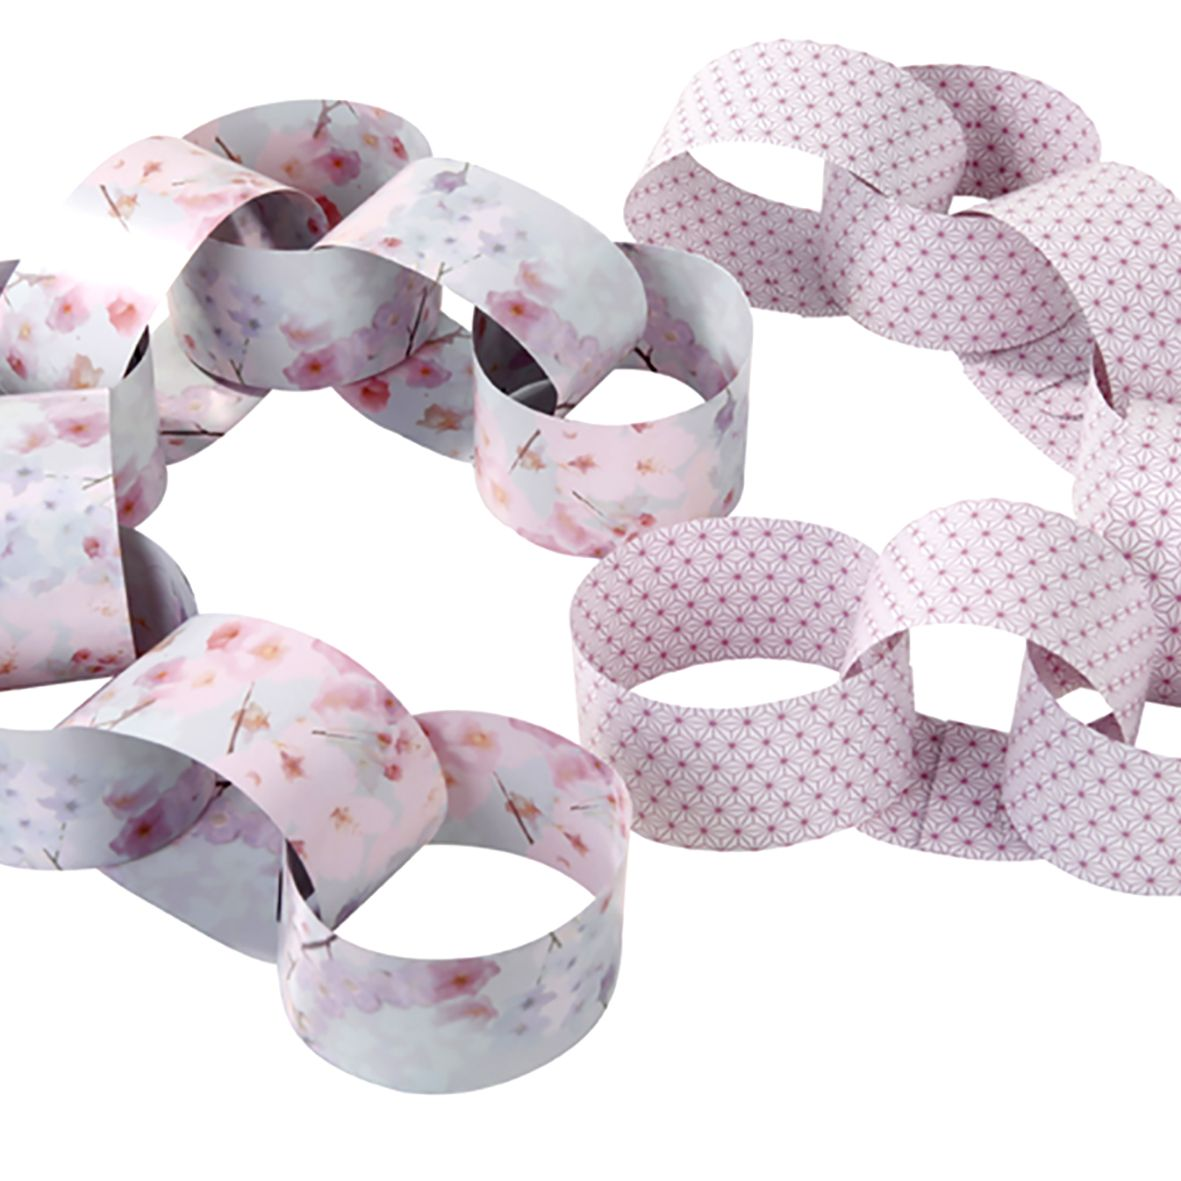 Paper Chain Kits category image